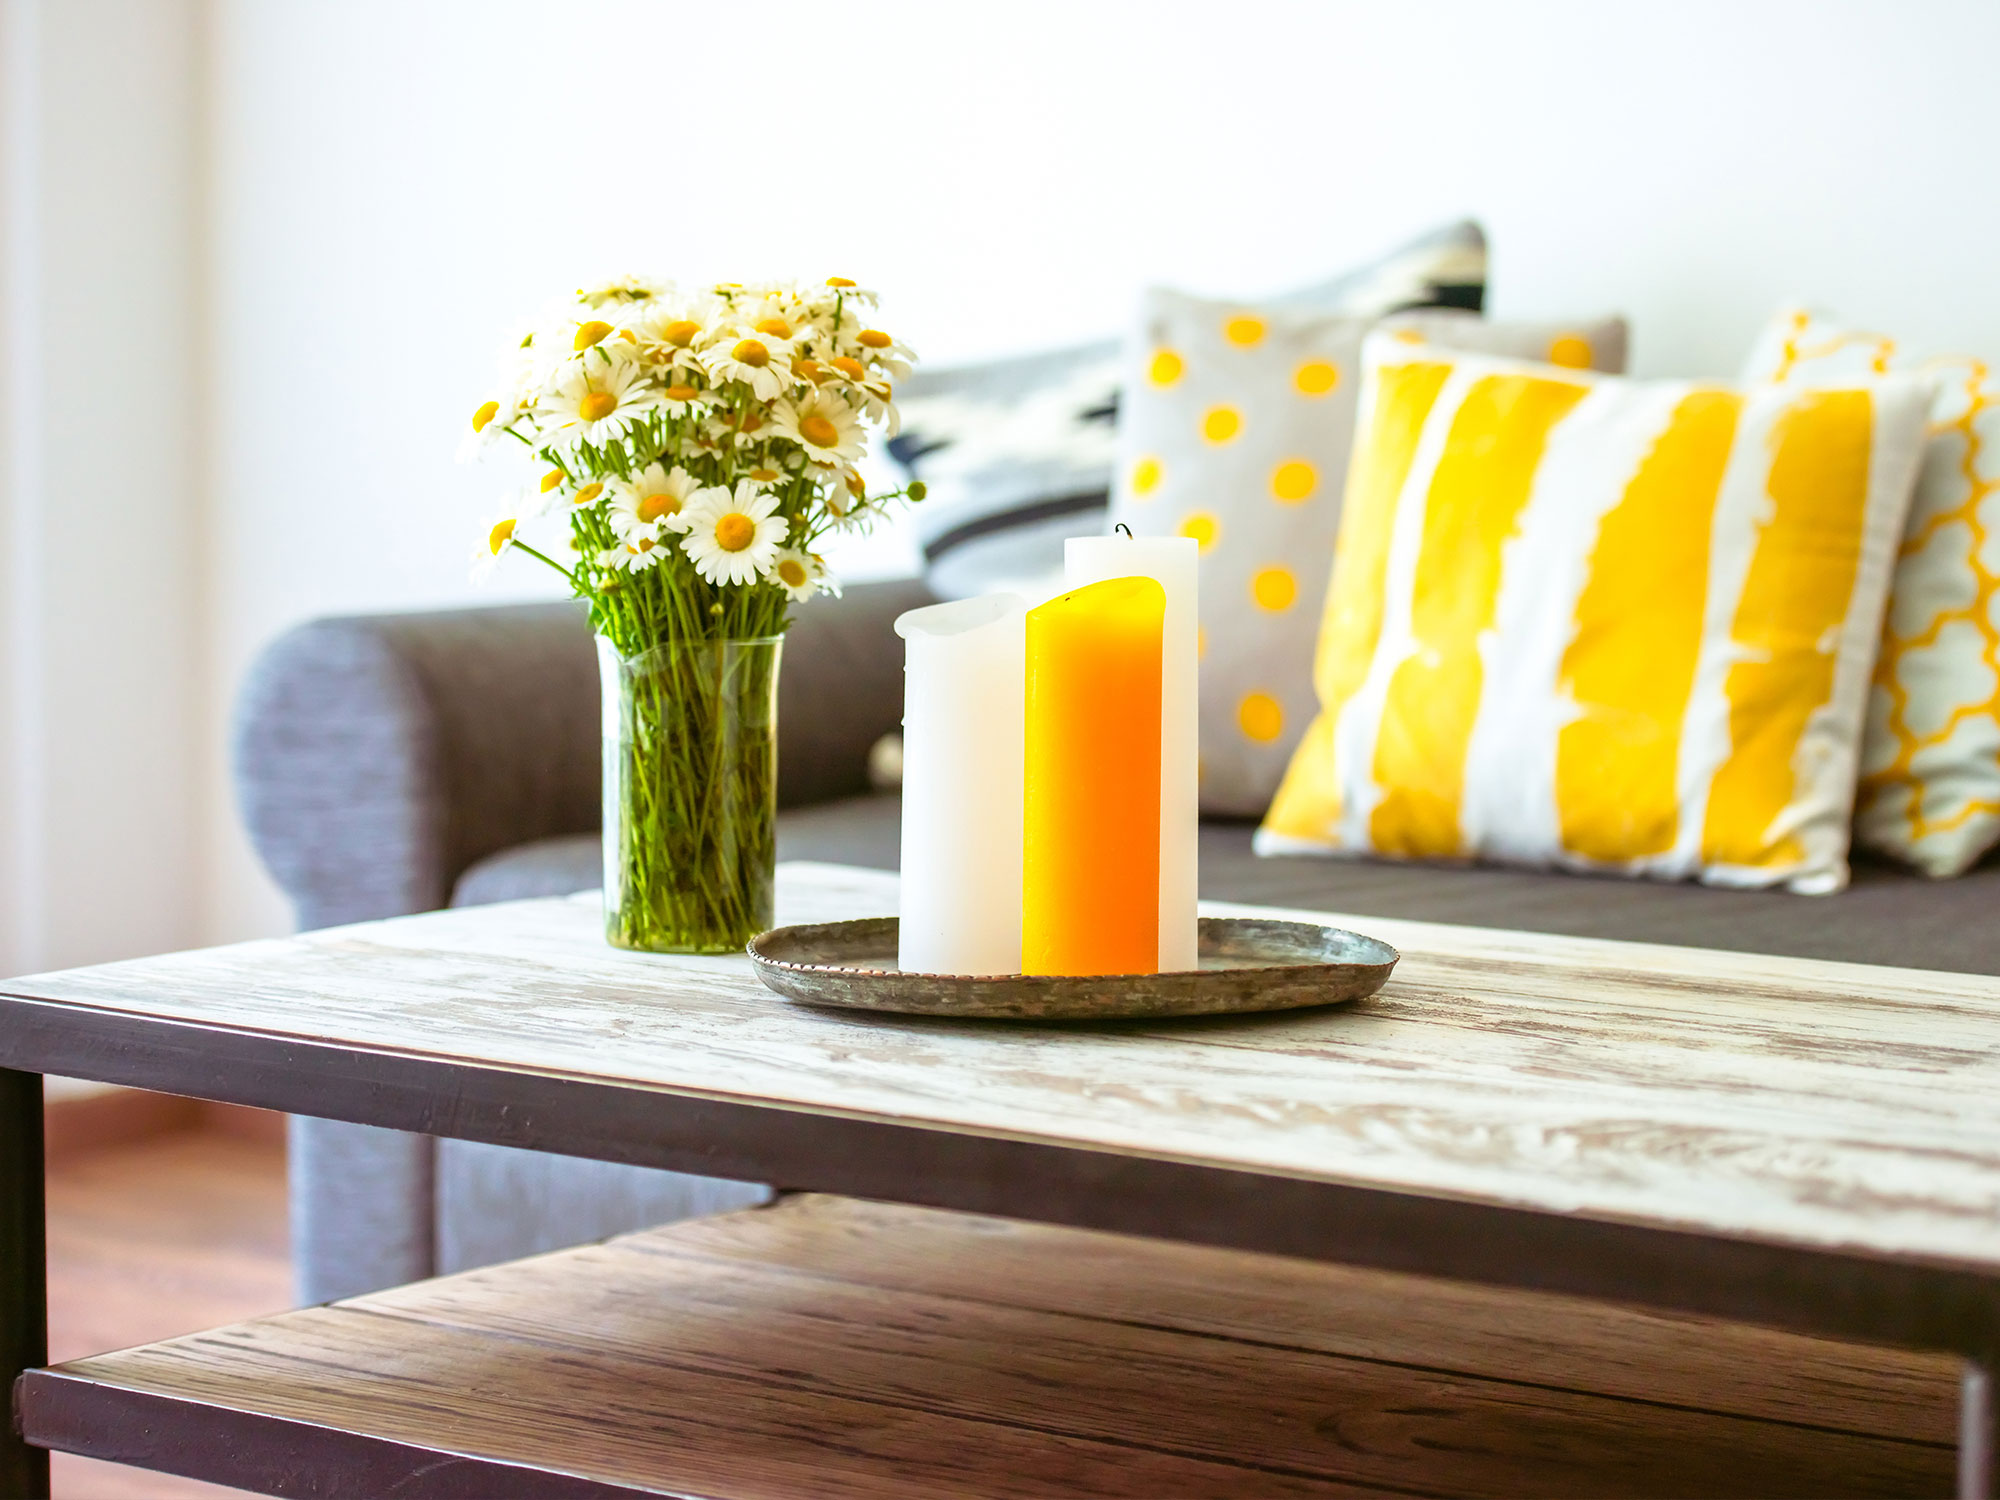 Coffee table with flowers and candles with couch in the background